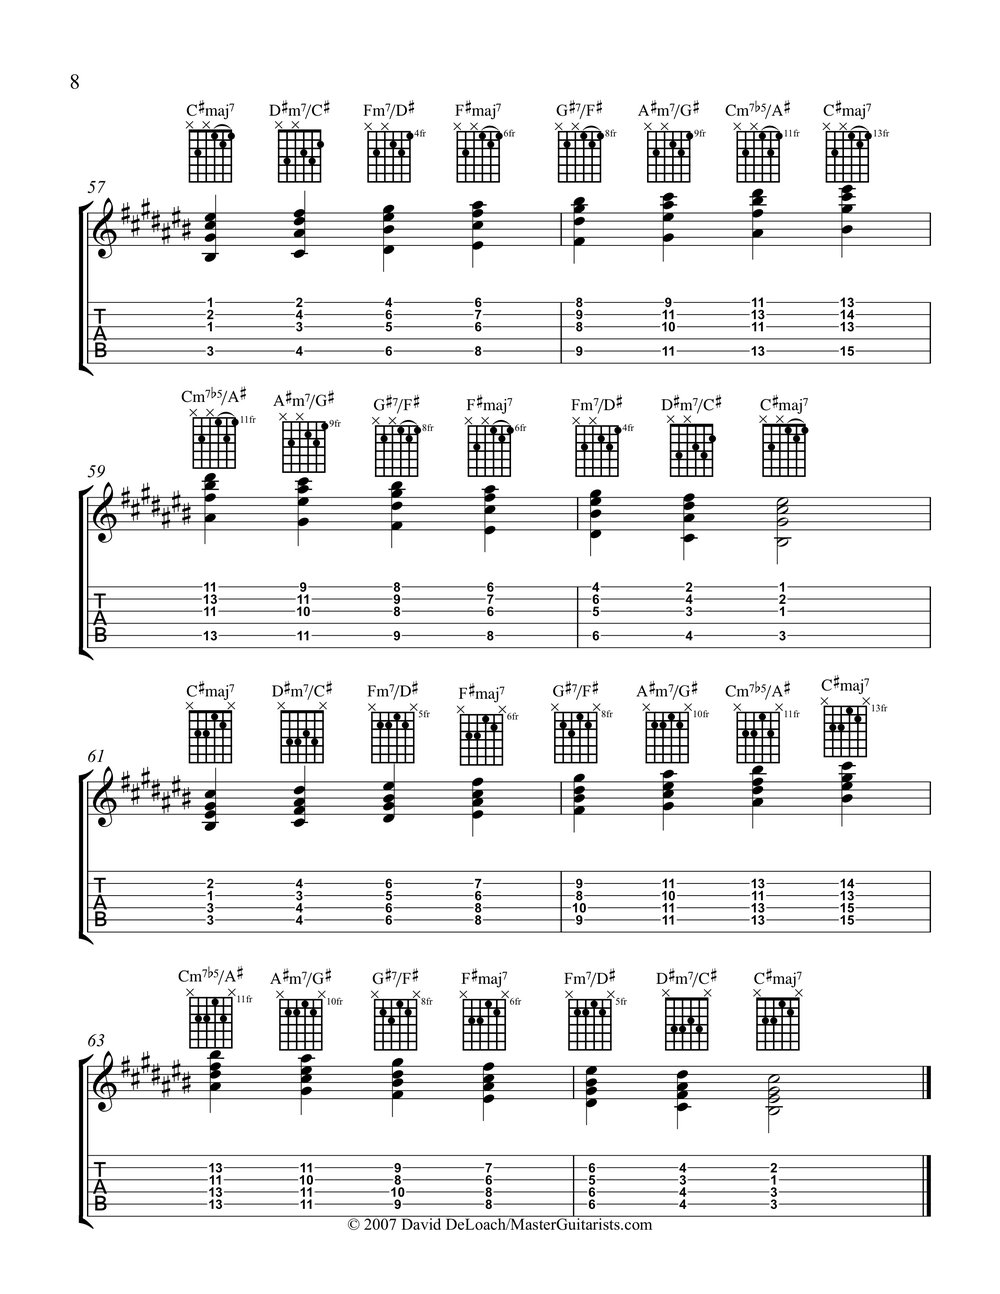 Diatonic 7th Chord Voicings of maj scale 1318186189 8-8.jpeg